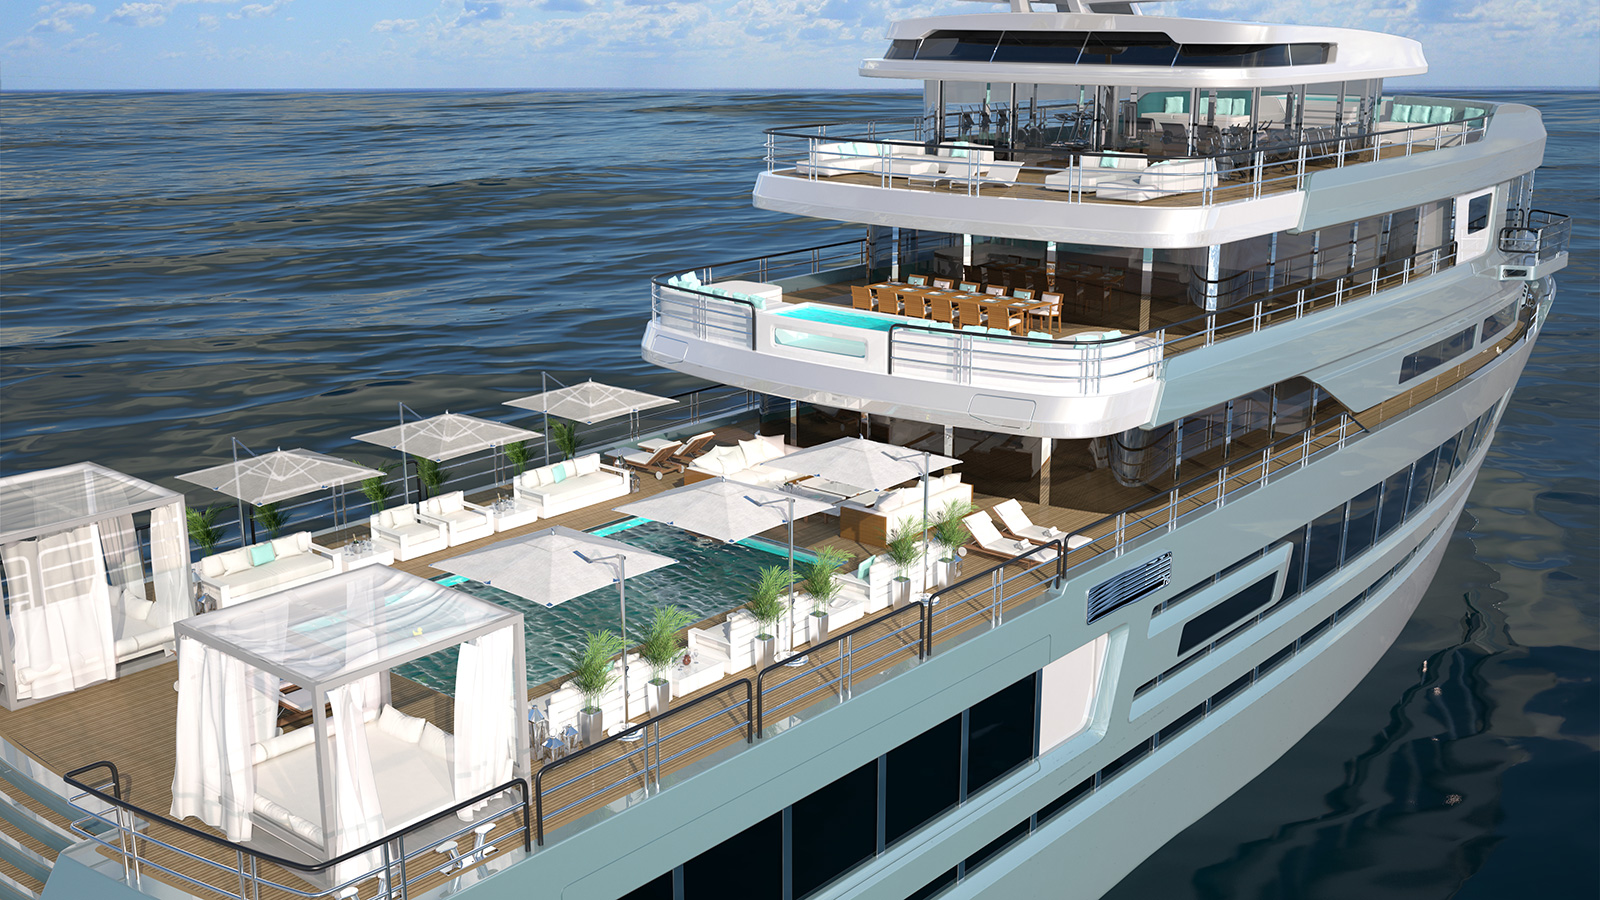 the-aft-deck-of-the-gill-schmid-explorer-yacht-concept-mystique